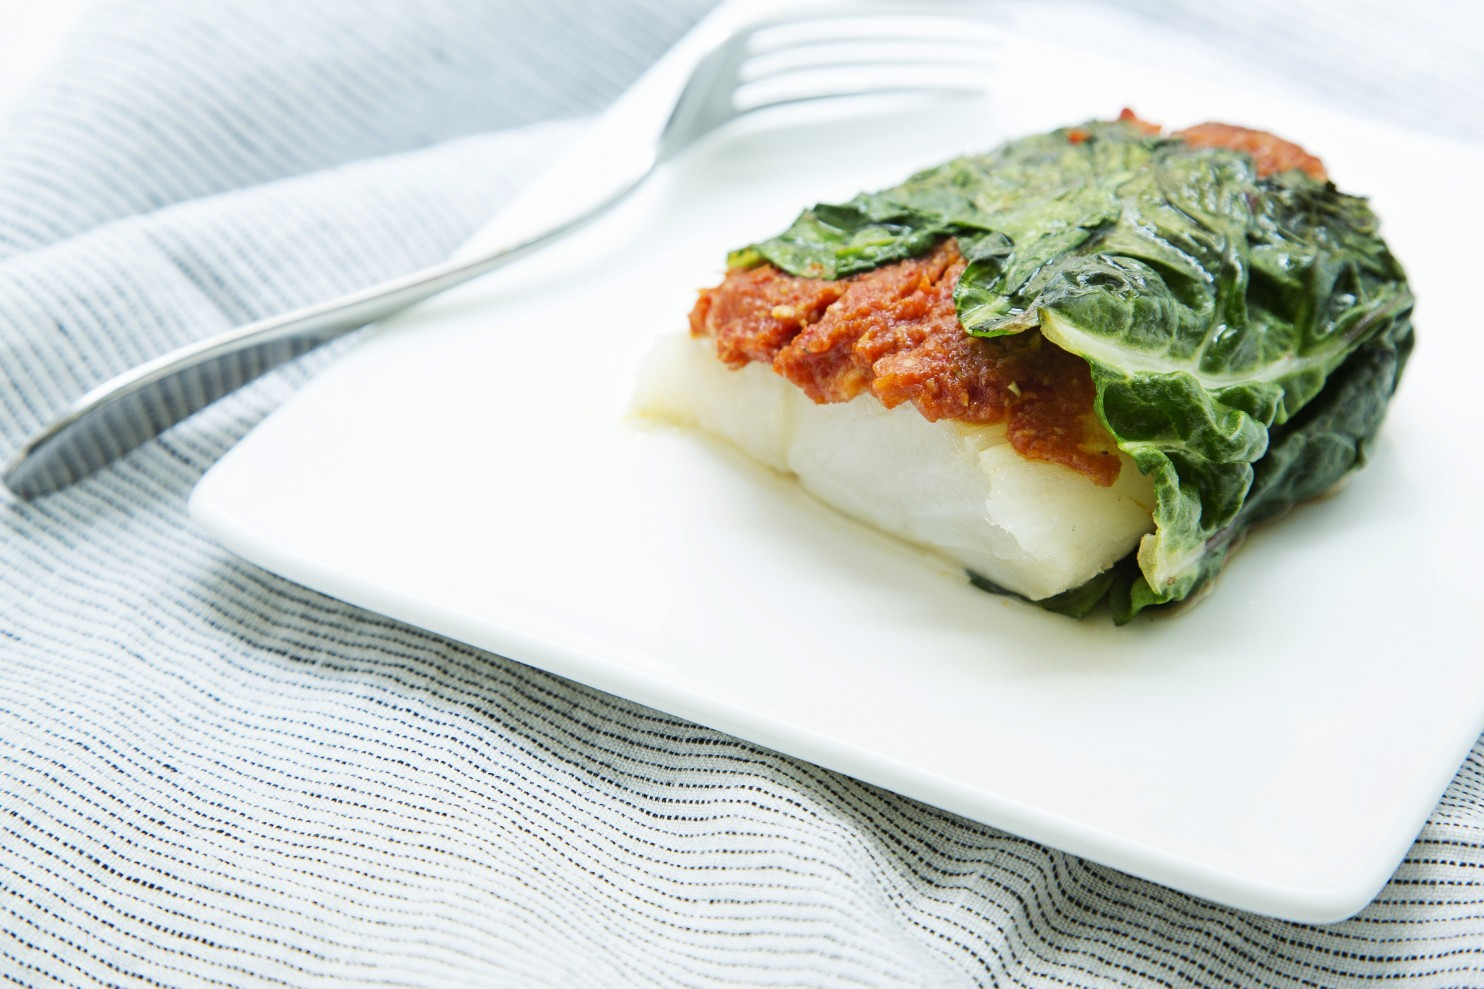 Chard-Wrapped Cod with Sun-Dried Tomato Tapenade